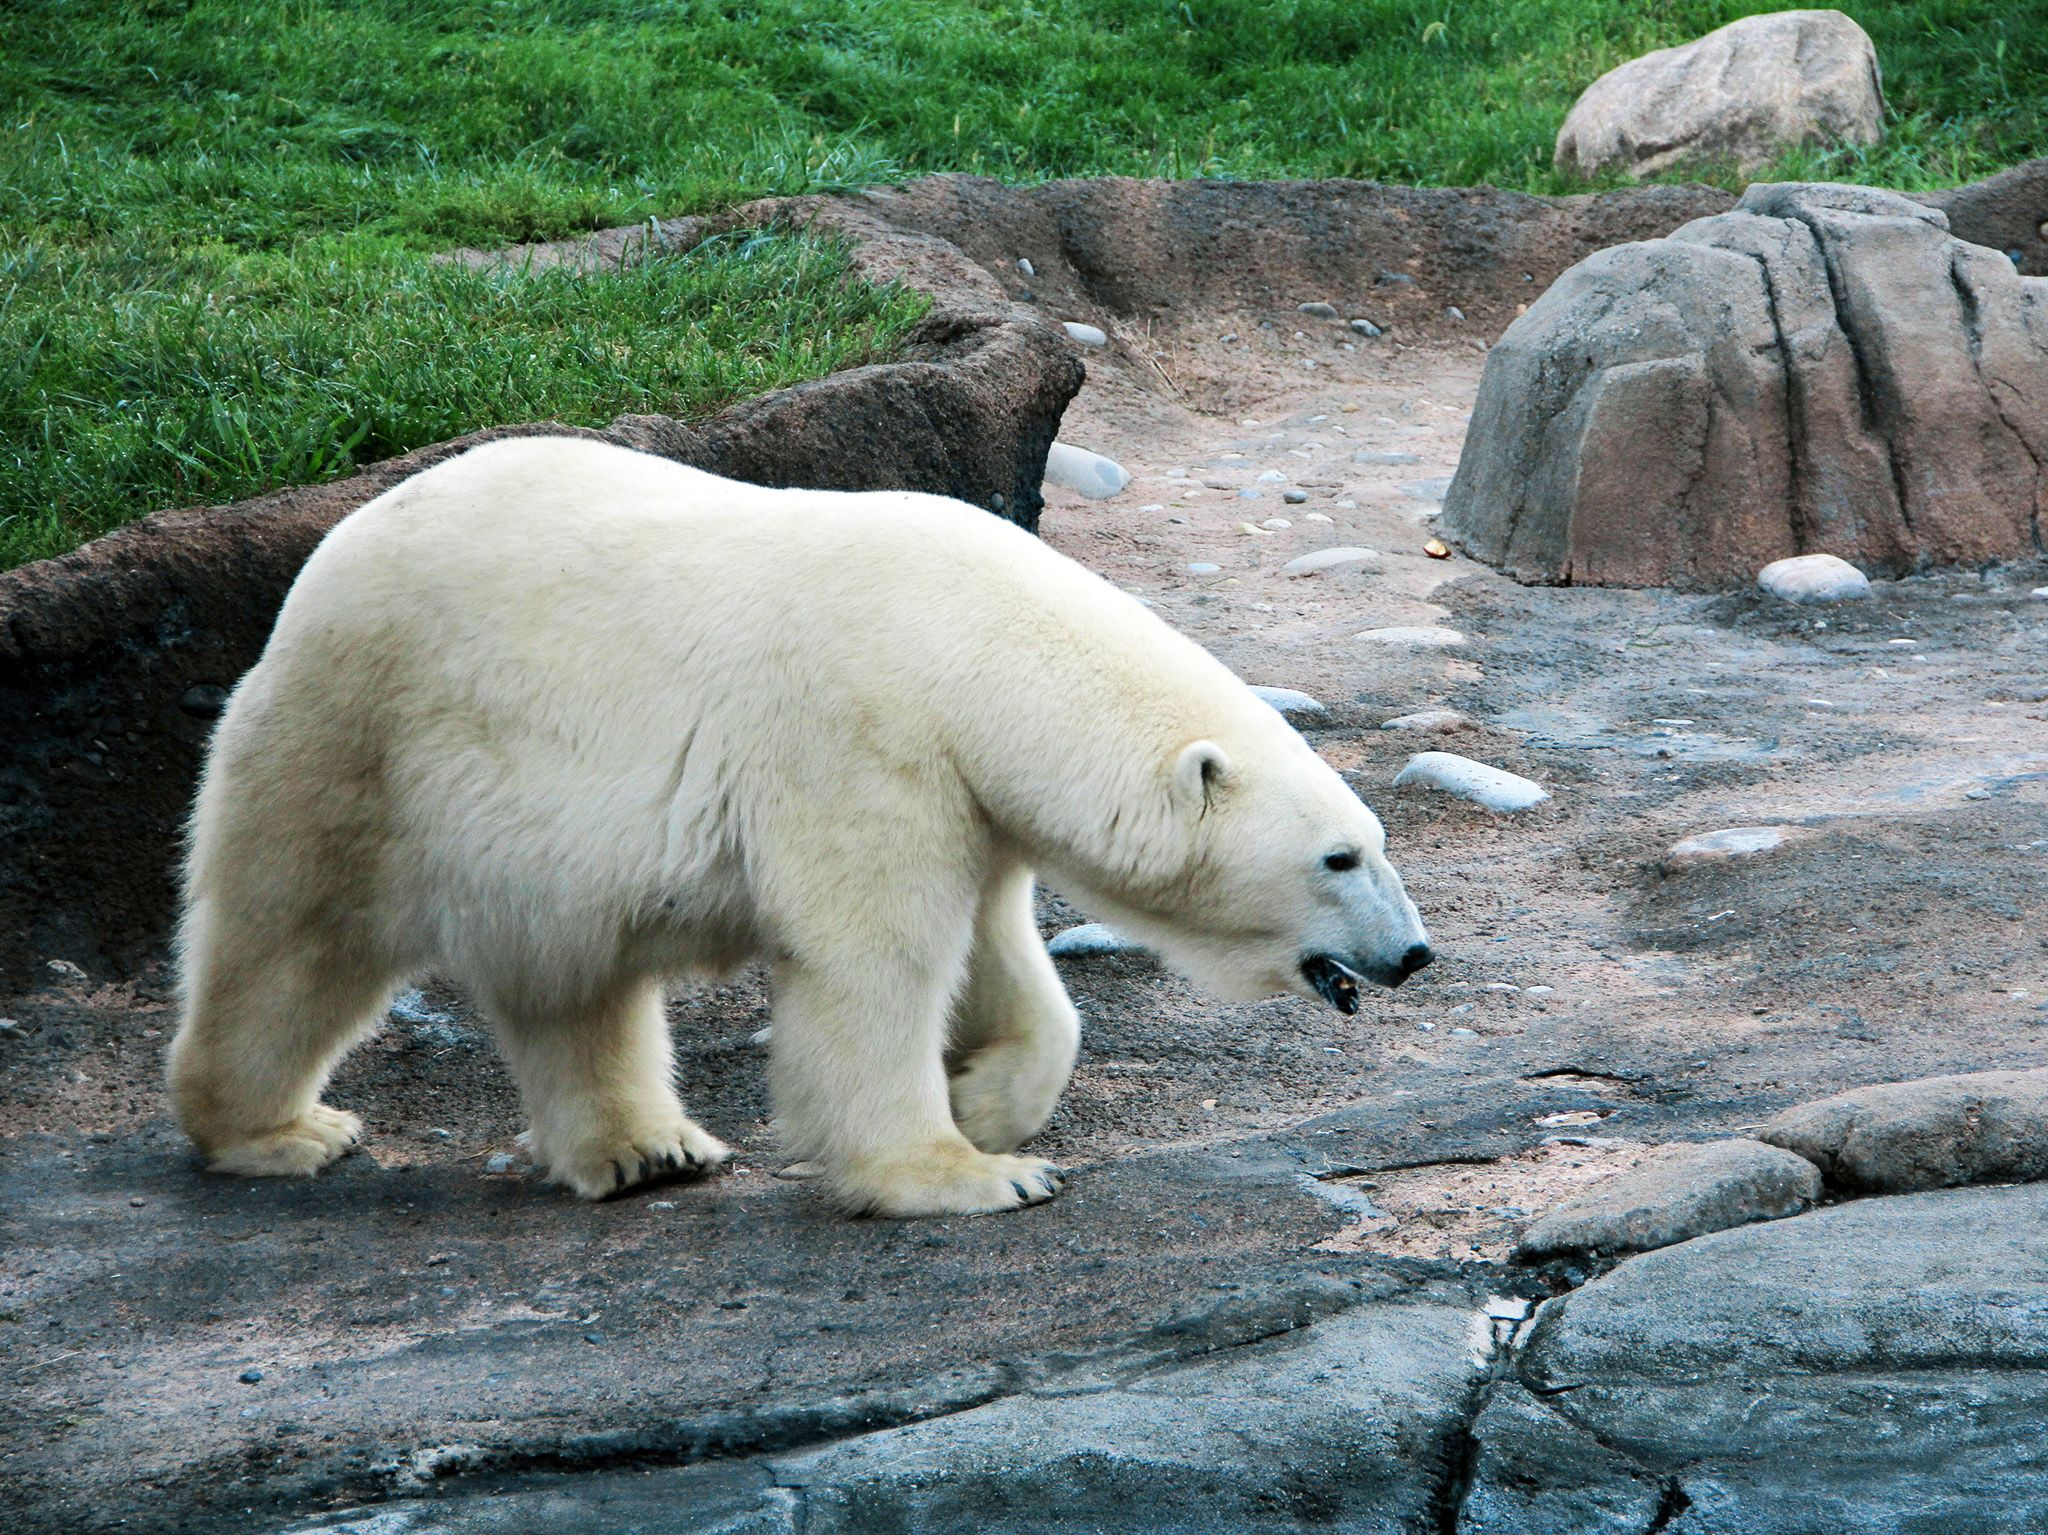 Aurora the polar bear roaming in her habitat. This image is from Secrets of the Zoo. [Photo of the day - September 2020]